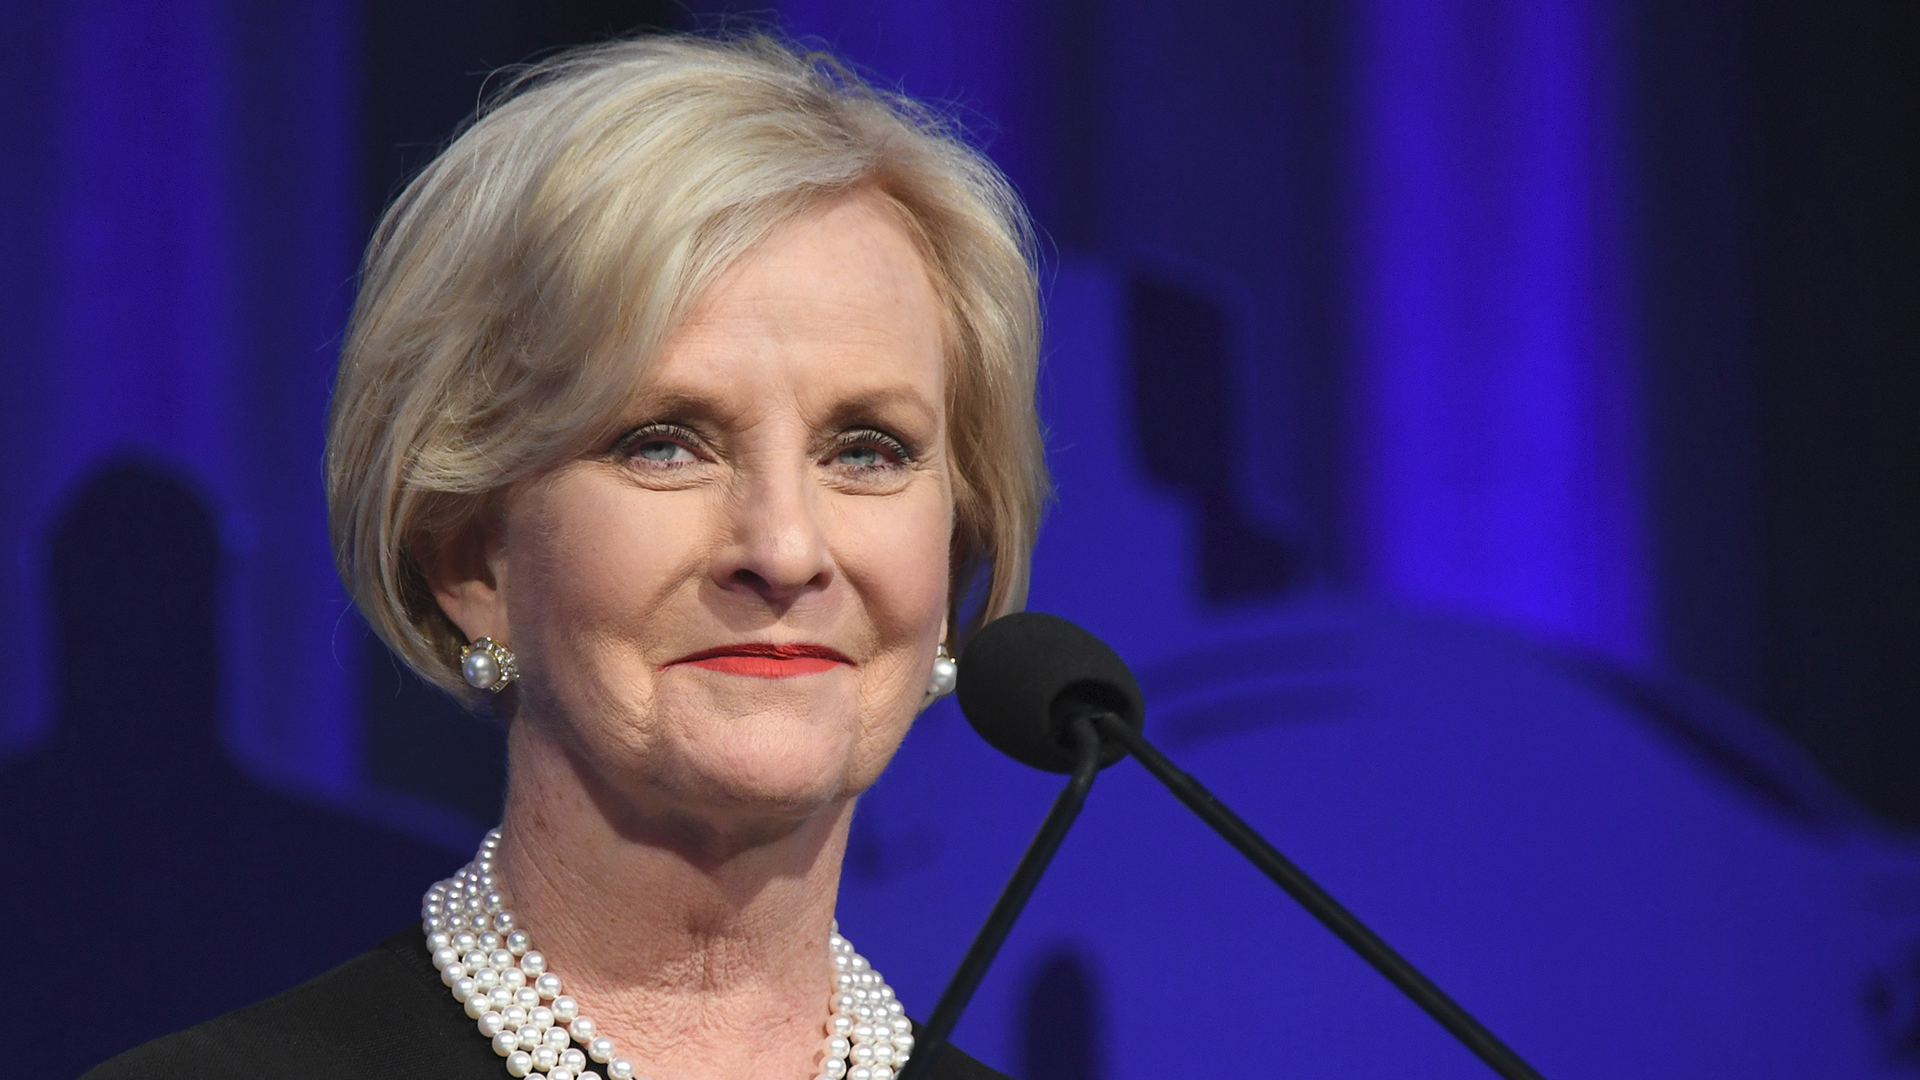 Cindy McCain would serve Biden administration 'in any capacity' if she's asked